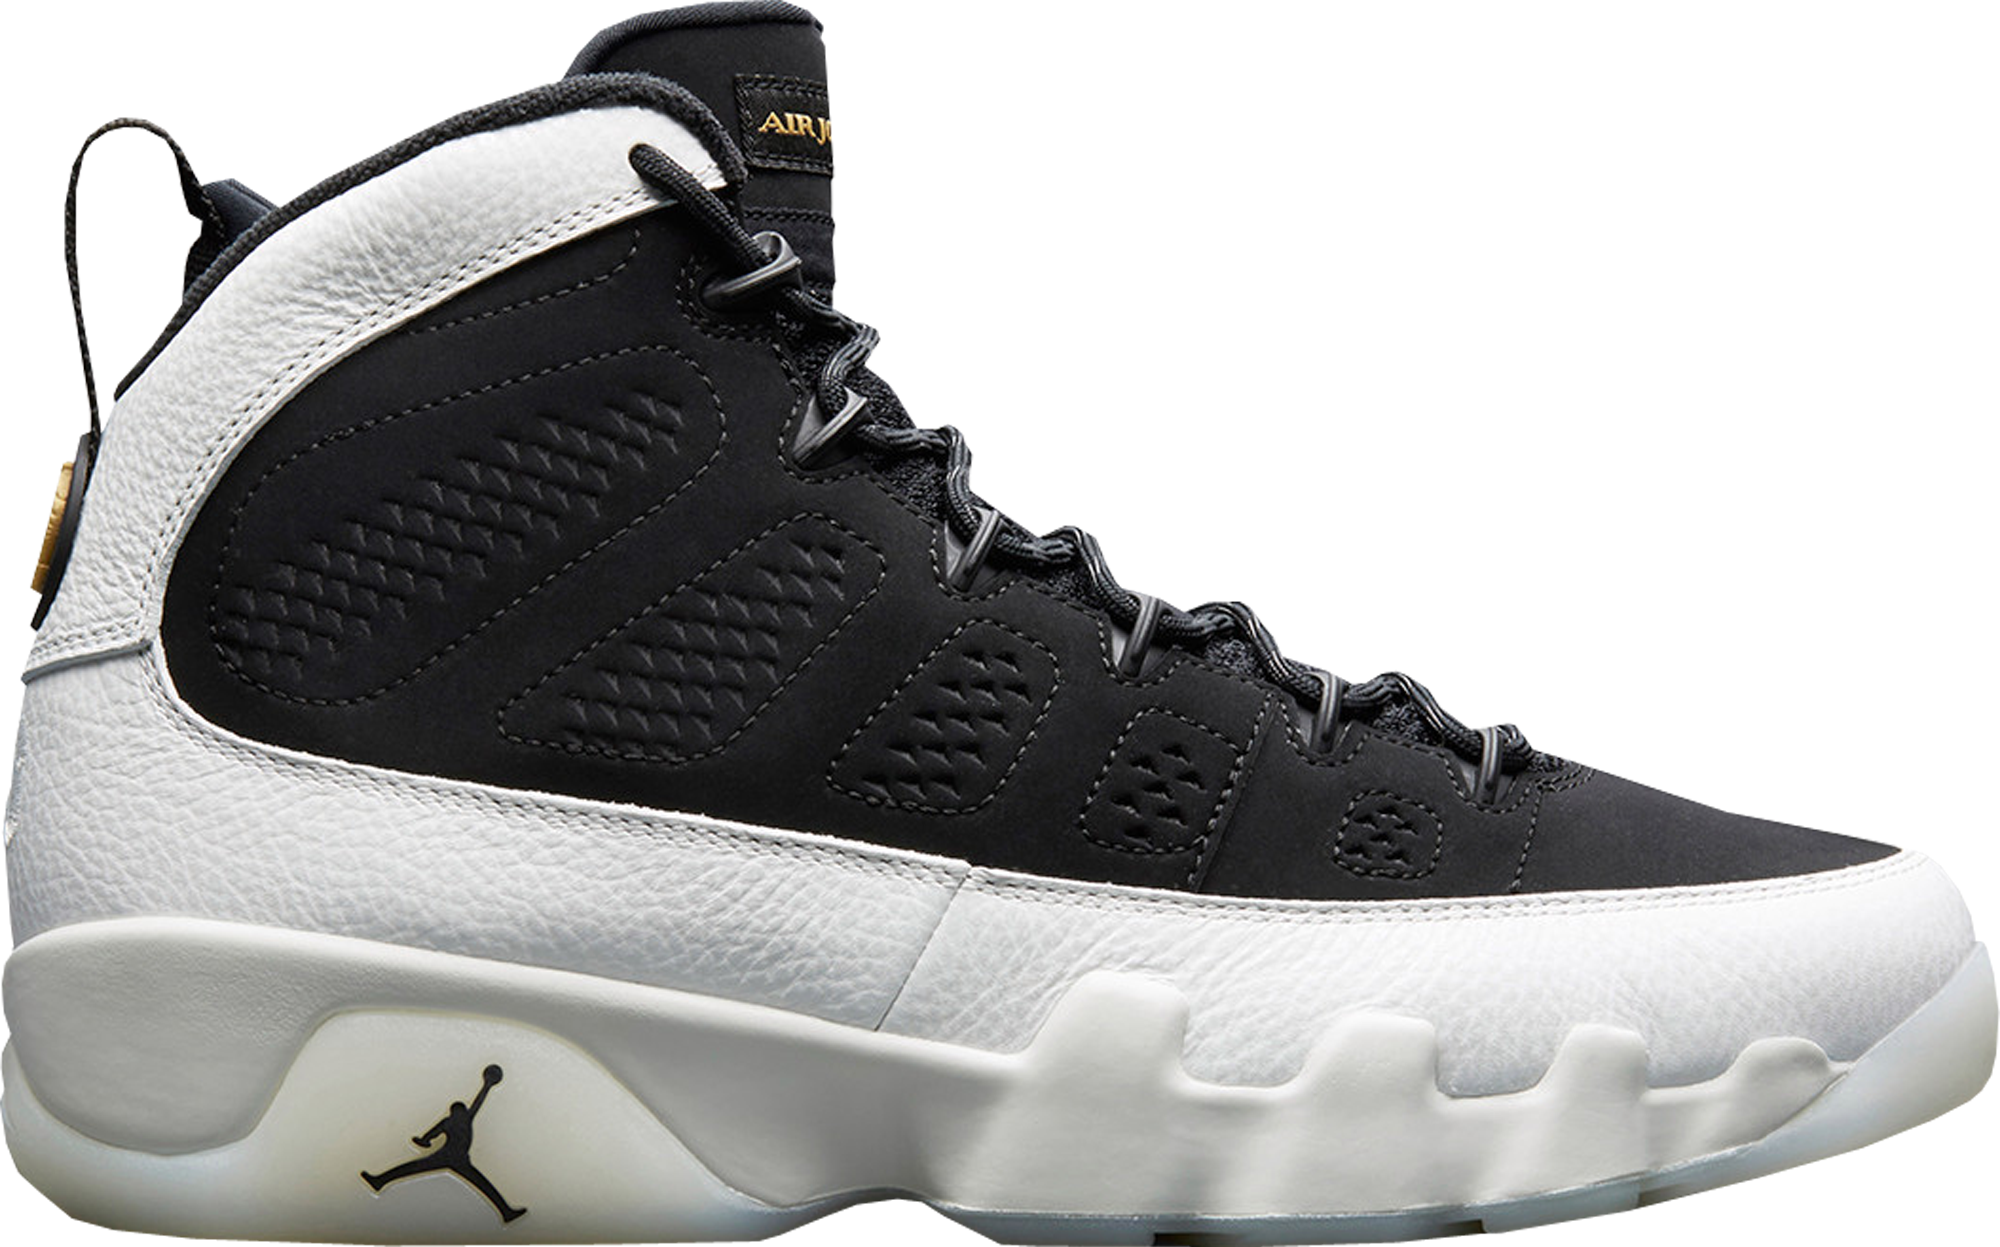 quality design f1ed6 a8ccd Air Jordan 9 All-Star 2018 - StockX News